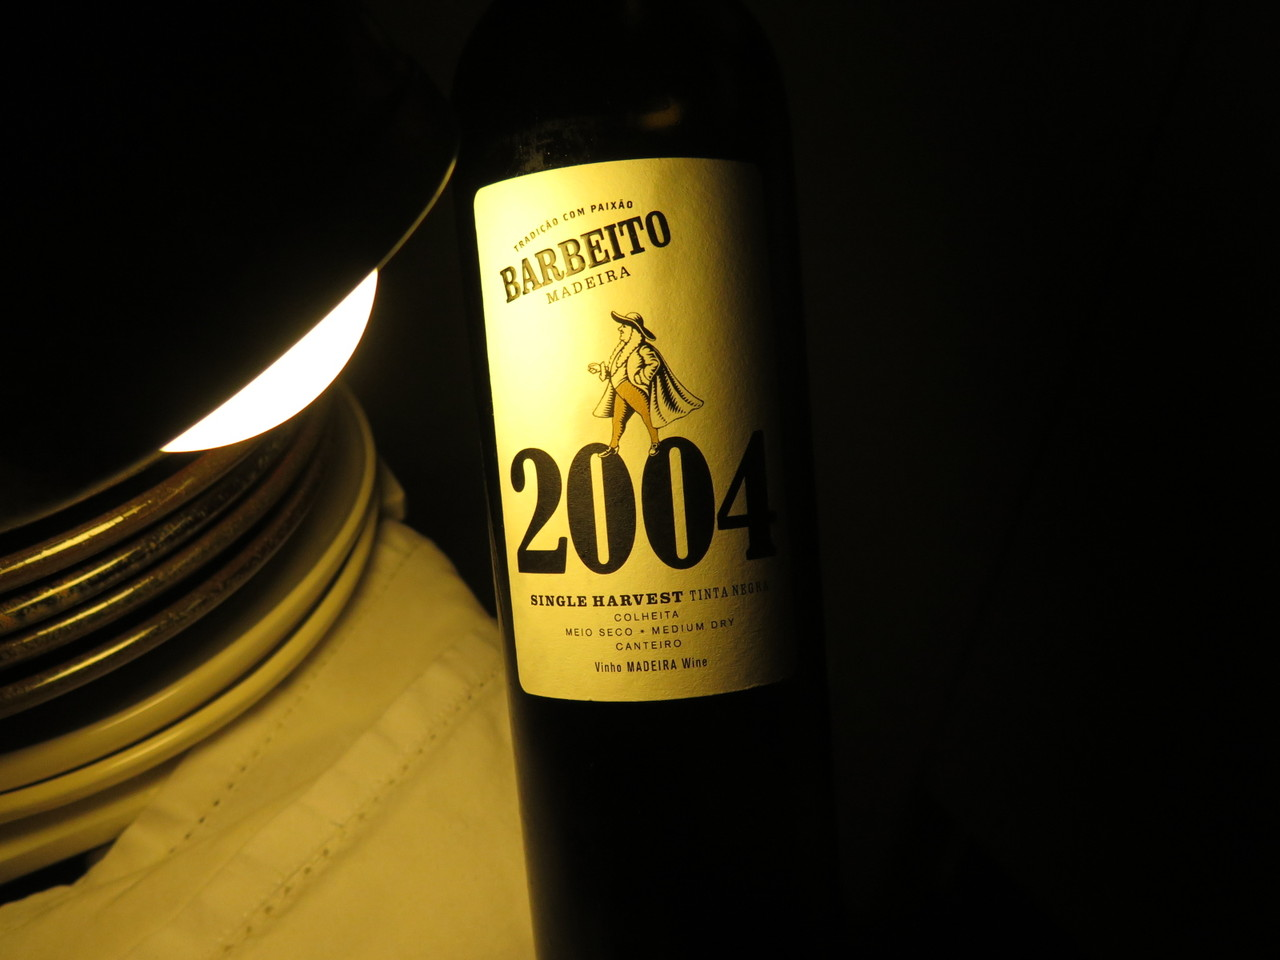 Barbeito Single Harvest 2004 Tinta Negra